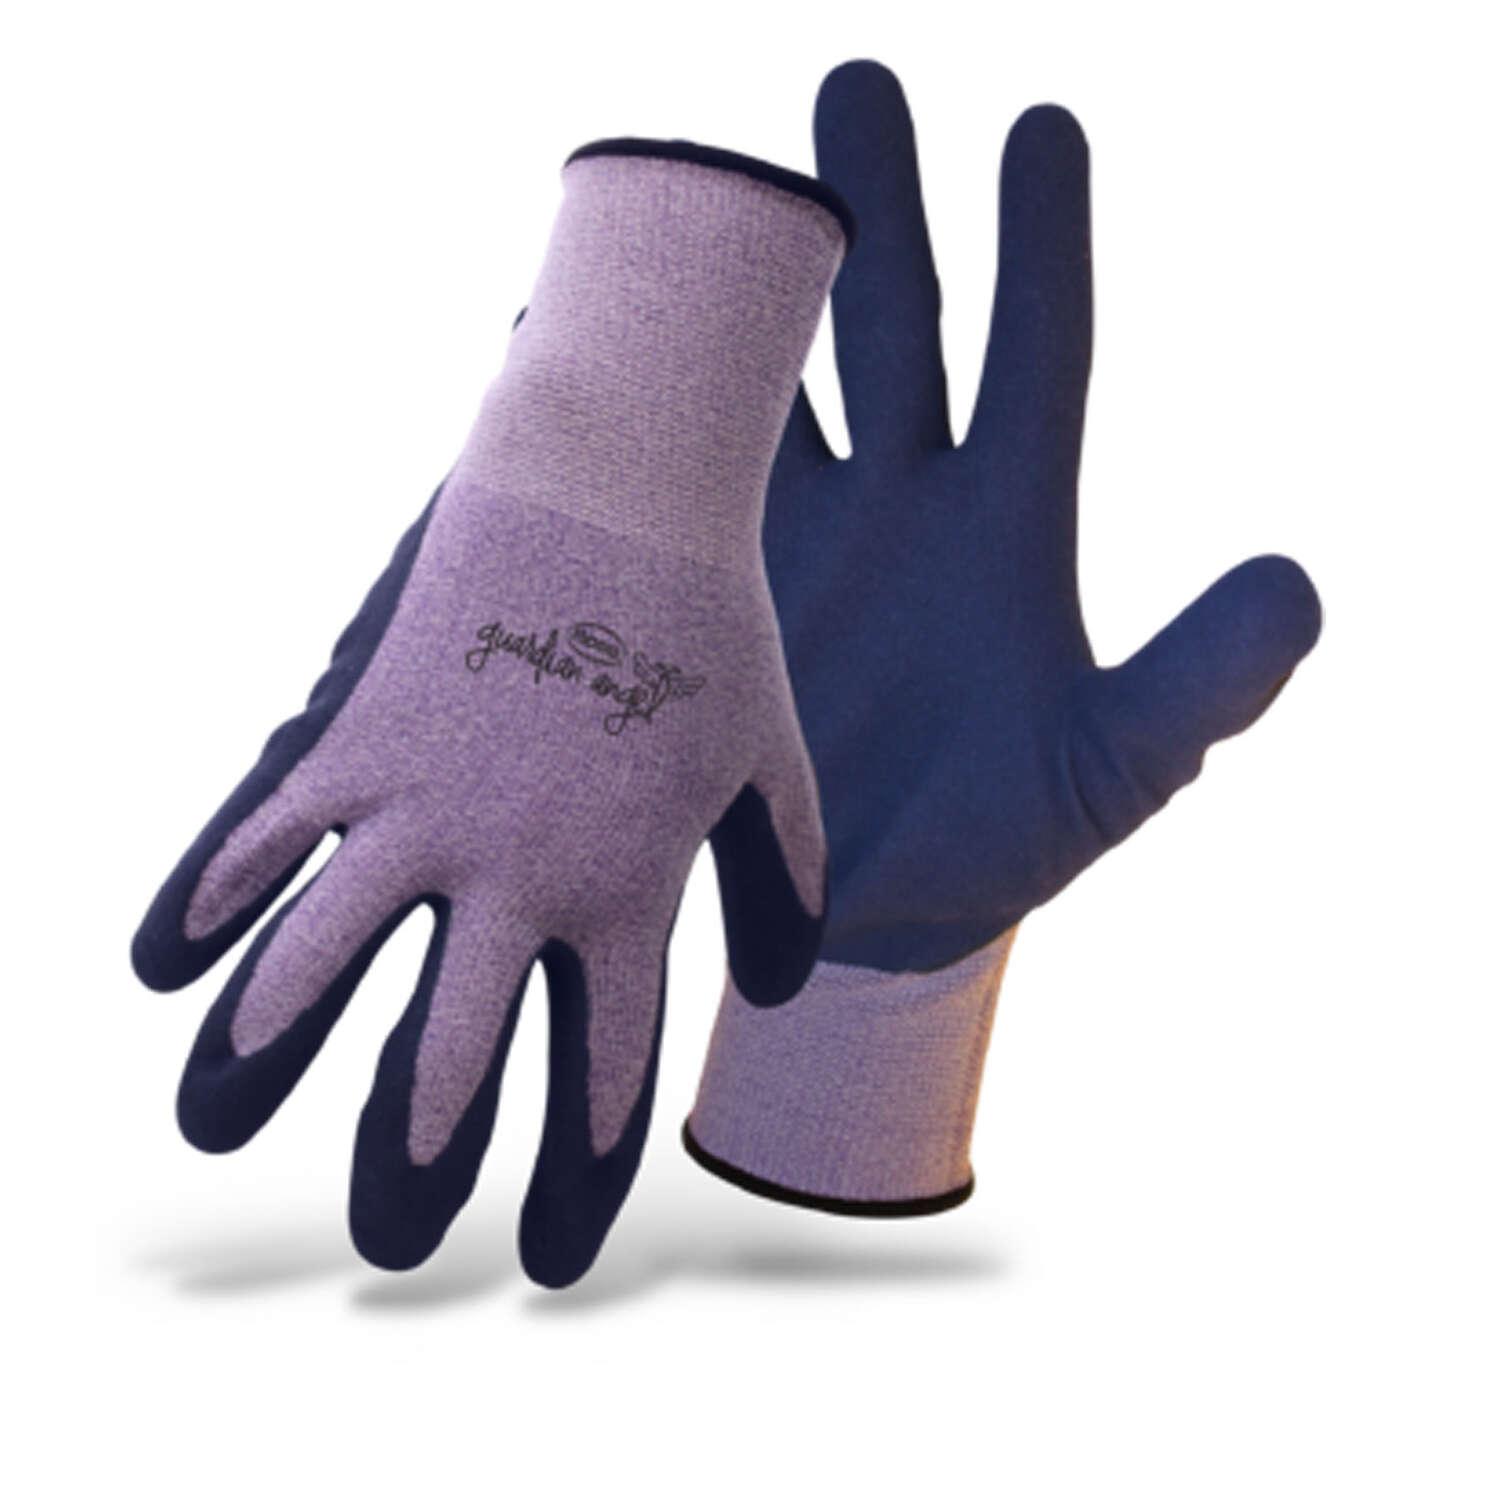 Boss  Guardian Angel  Women's  Outdoor  Knit Stretch  Gardening Gloves  Purple  One Size Fits Most